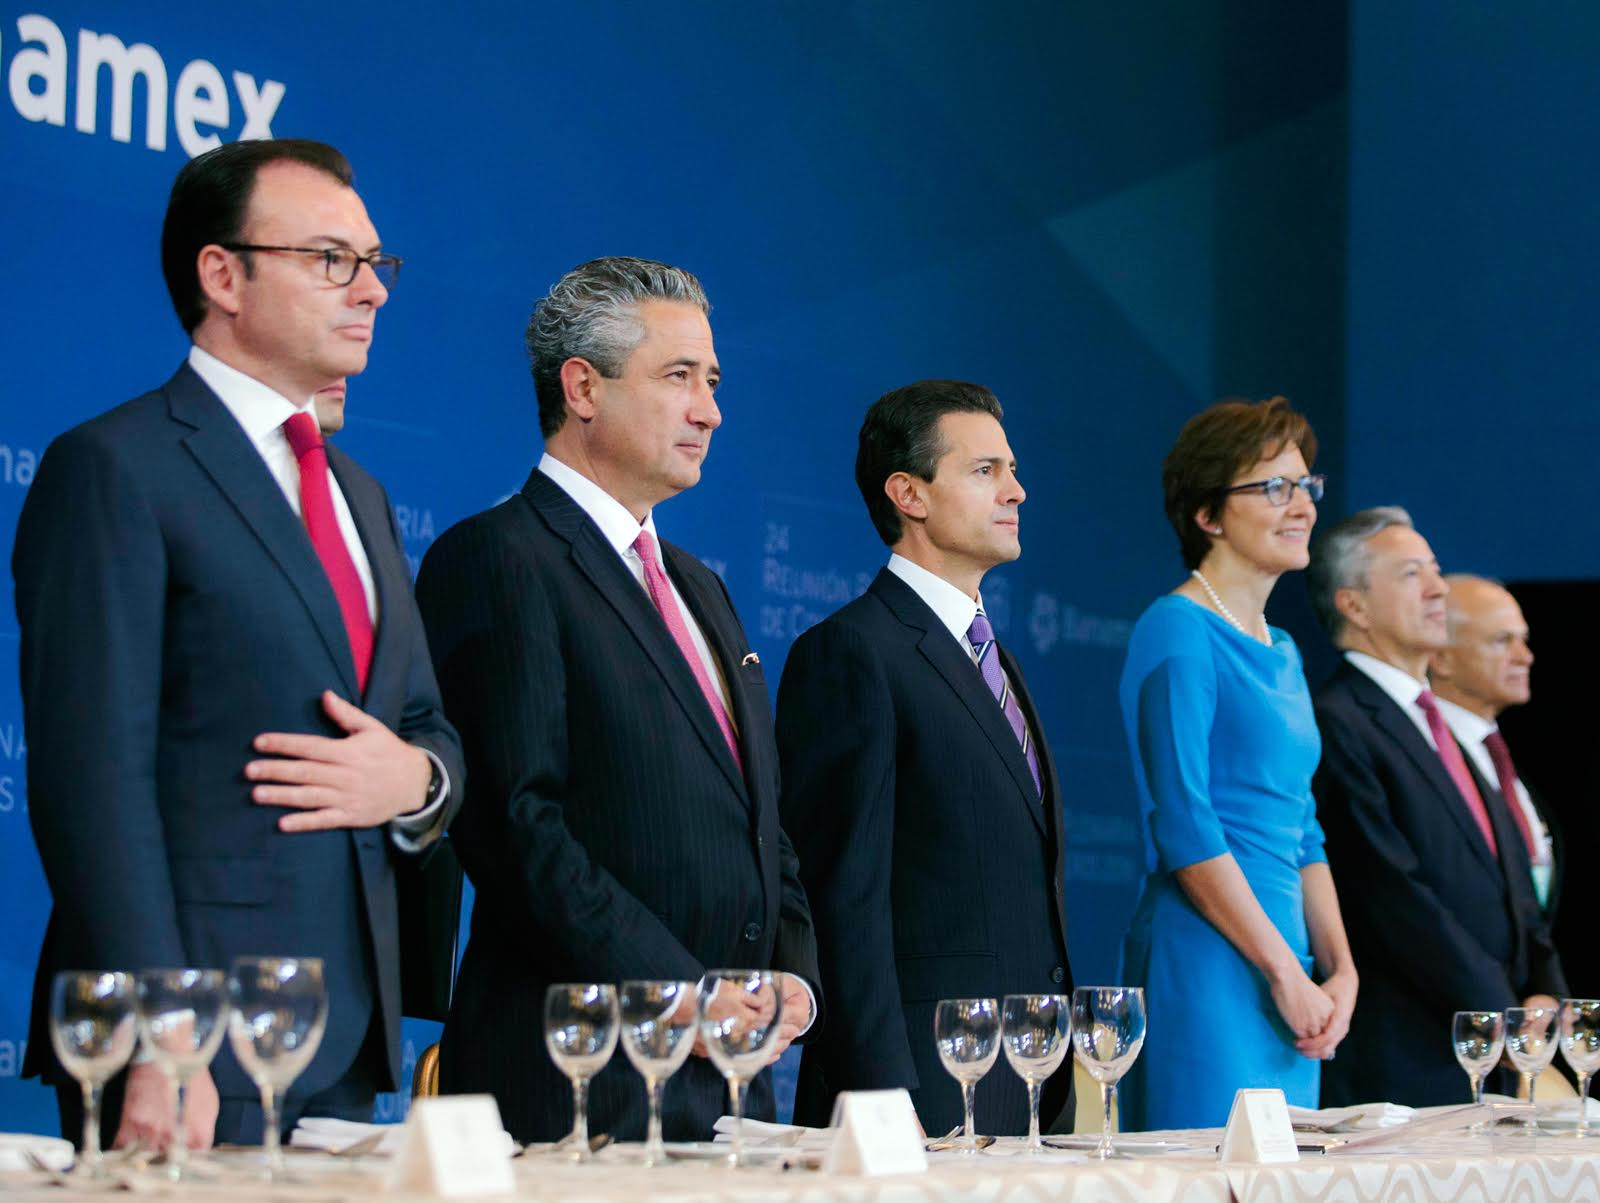 The president led the 24th Plenary Meeting of the Banamex Board of Directors.